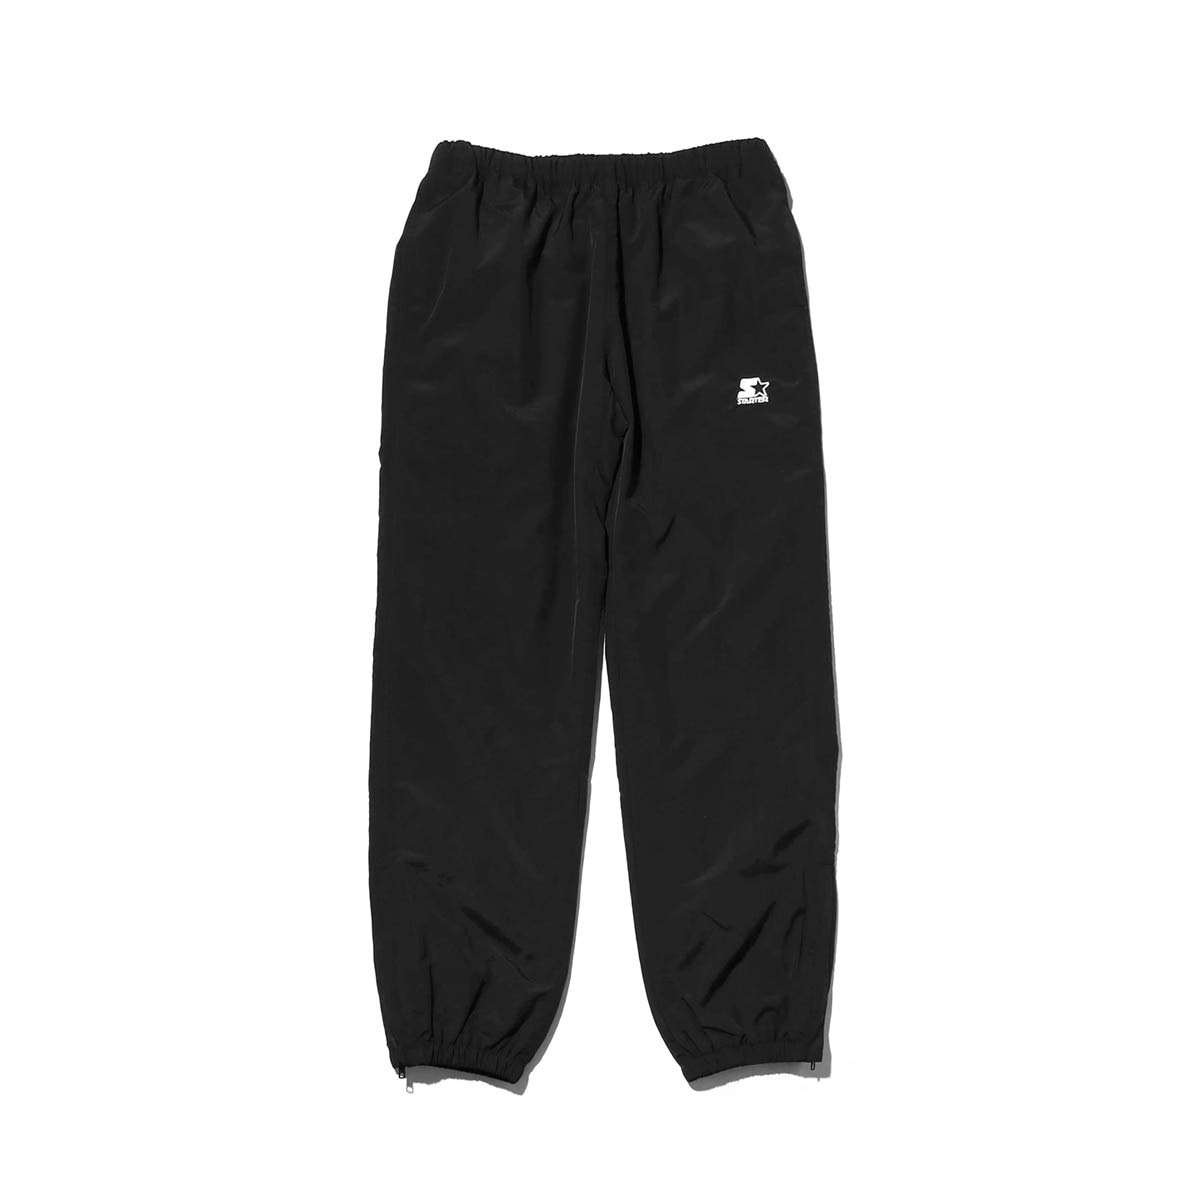 STARTER BLACK LABEL x ATMOS LAB WARM UP PANTS (black) B07Q3DFKX7